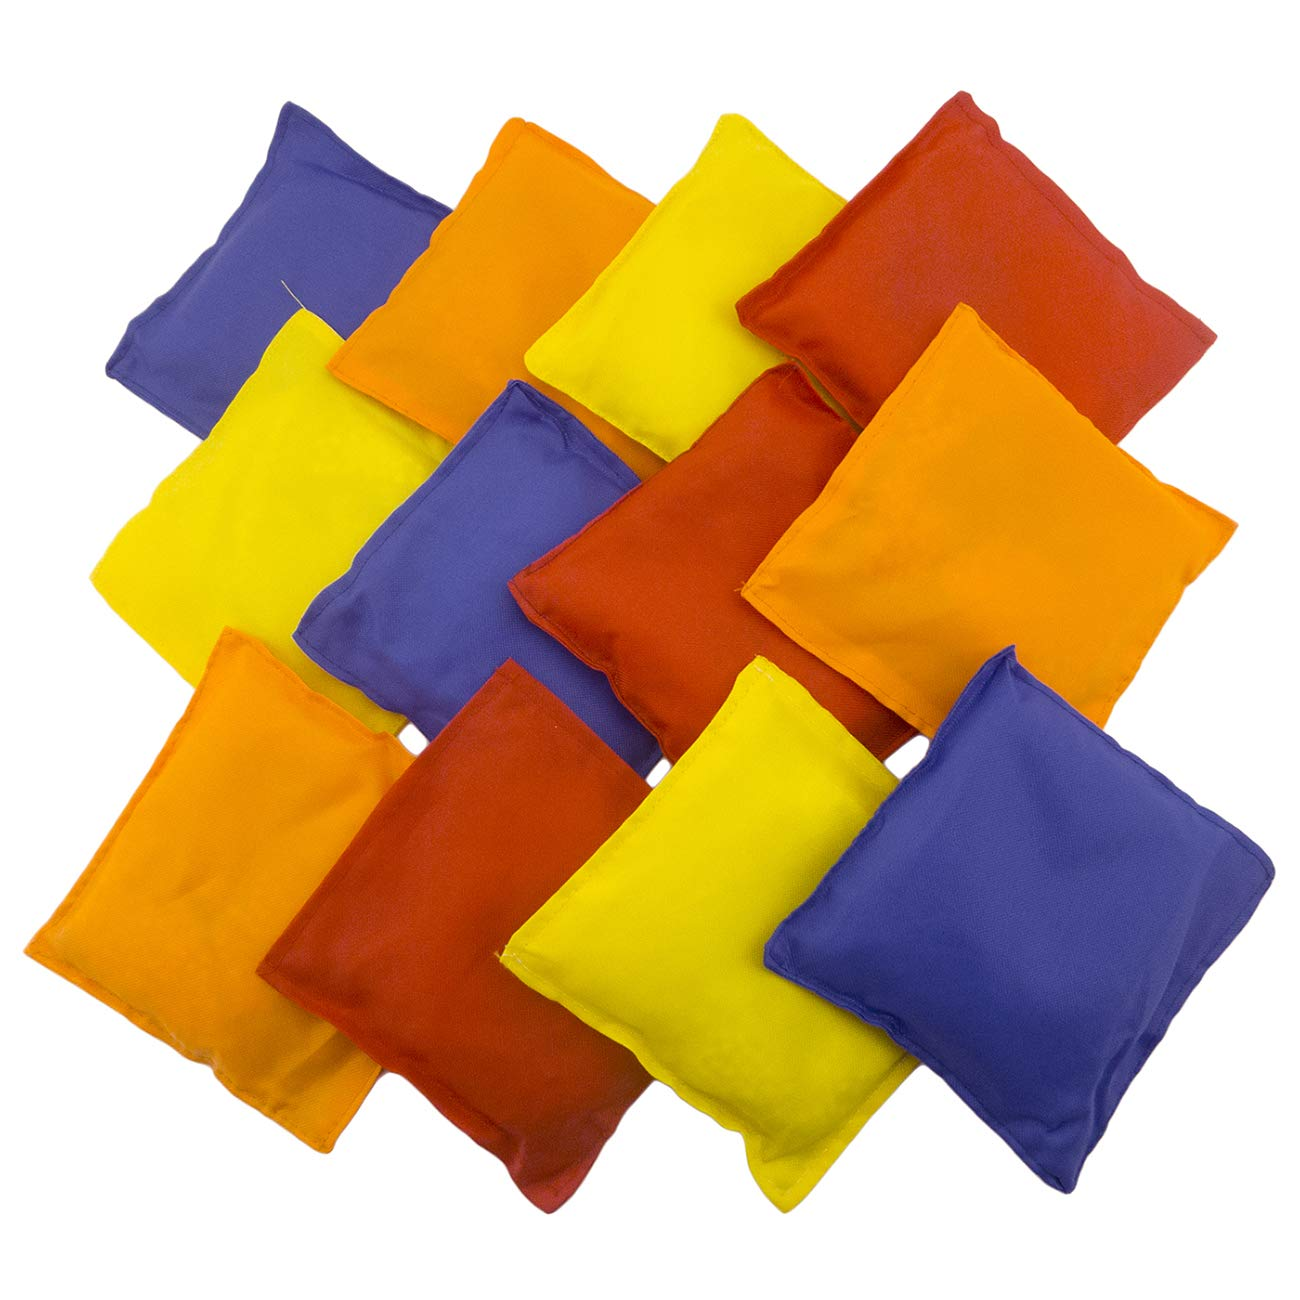 Tytroy Assorted 5'' Primary Color Nylon Bean Bags Carnival Game Toy Corn Hole (12 Pack)